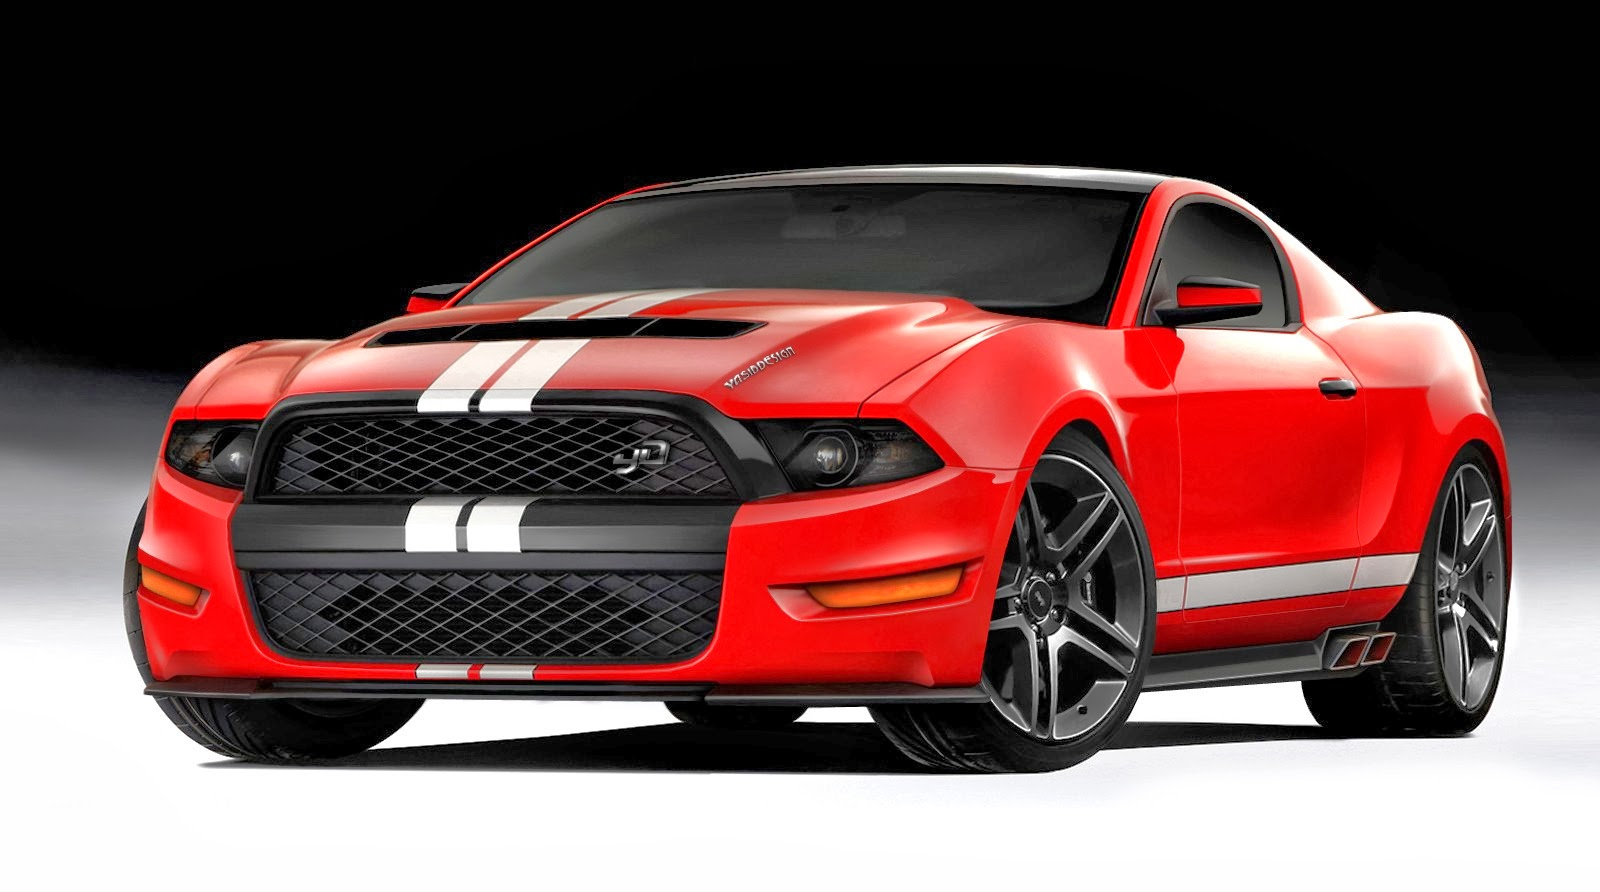 Gt500 Mustang 2015 >> 2015 Ford Mustang Shelby Gt500 1 Autowise